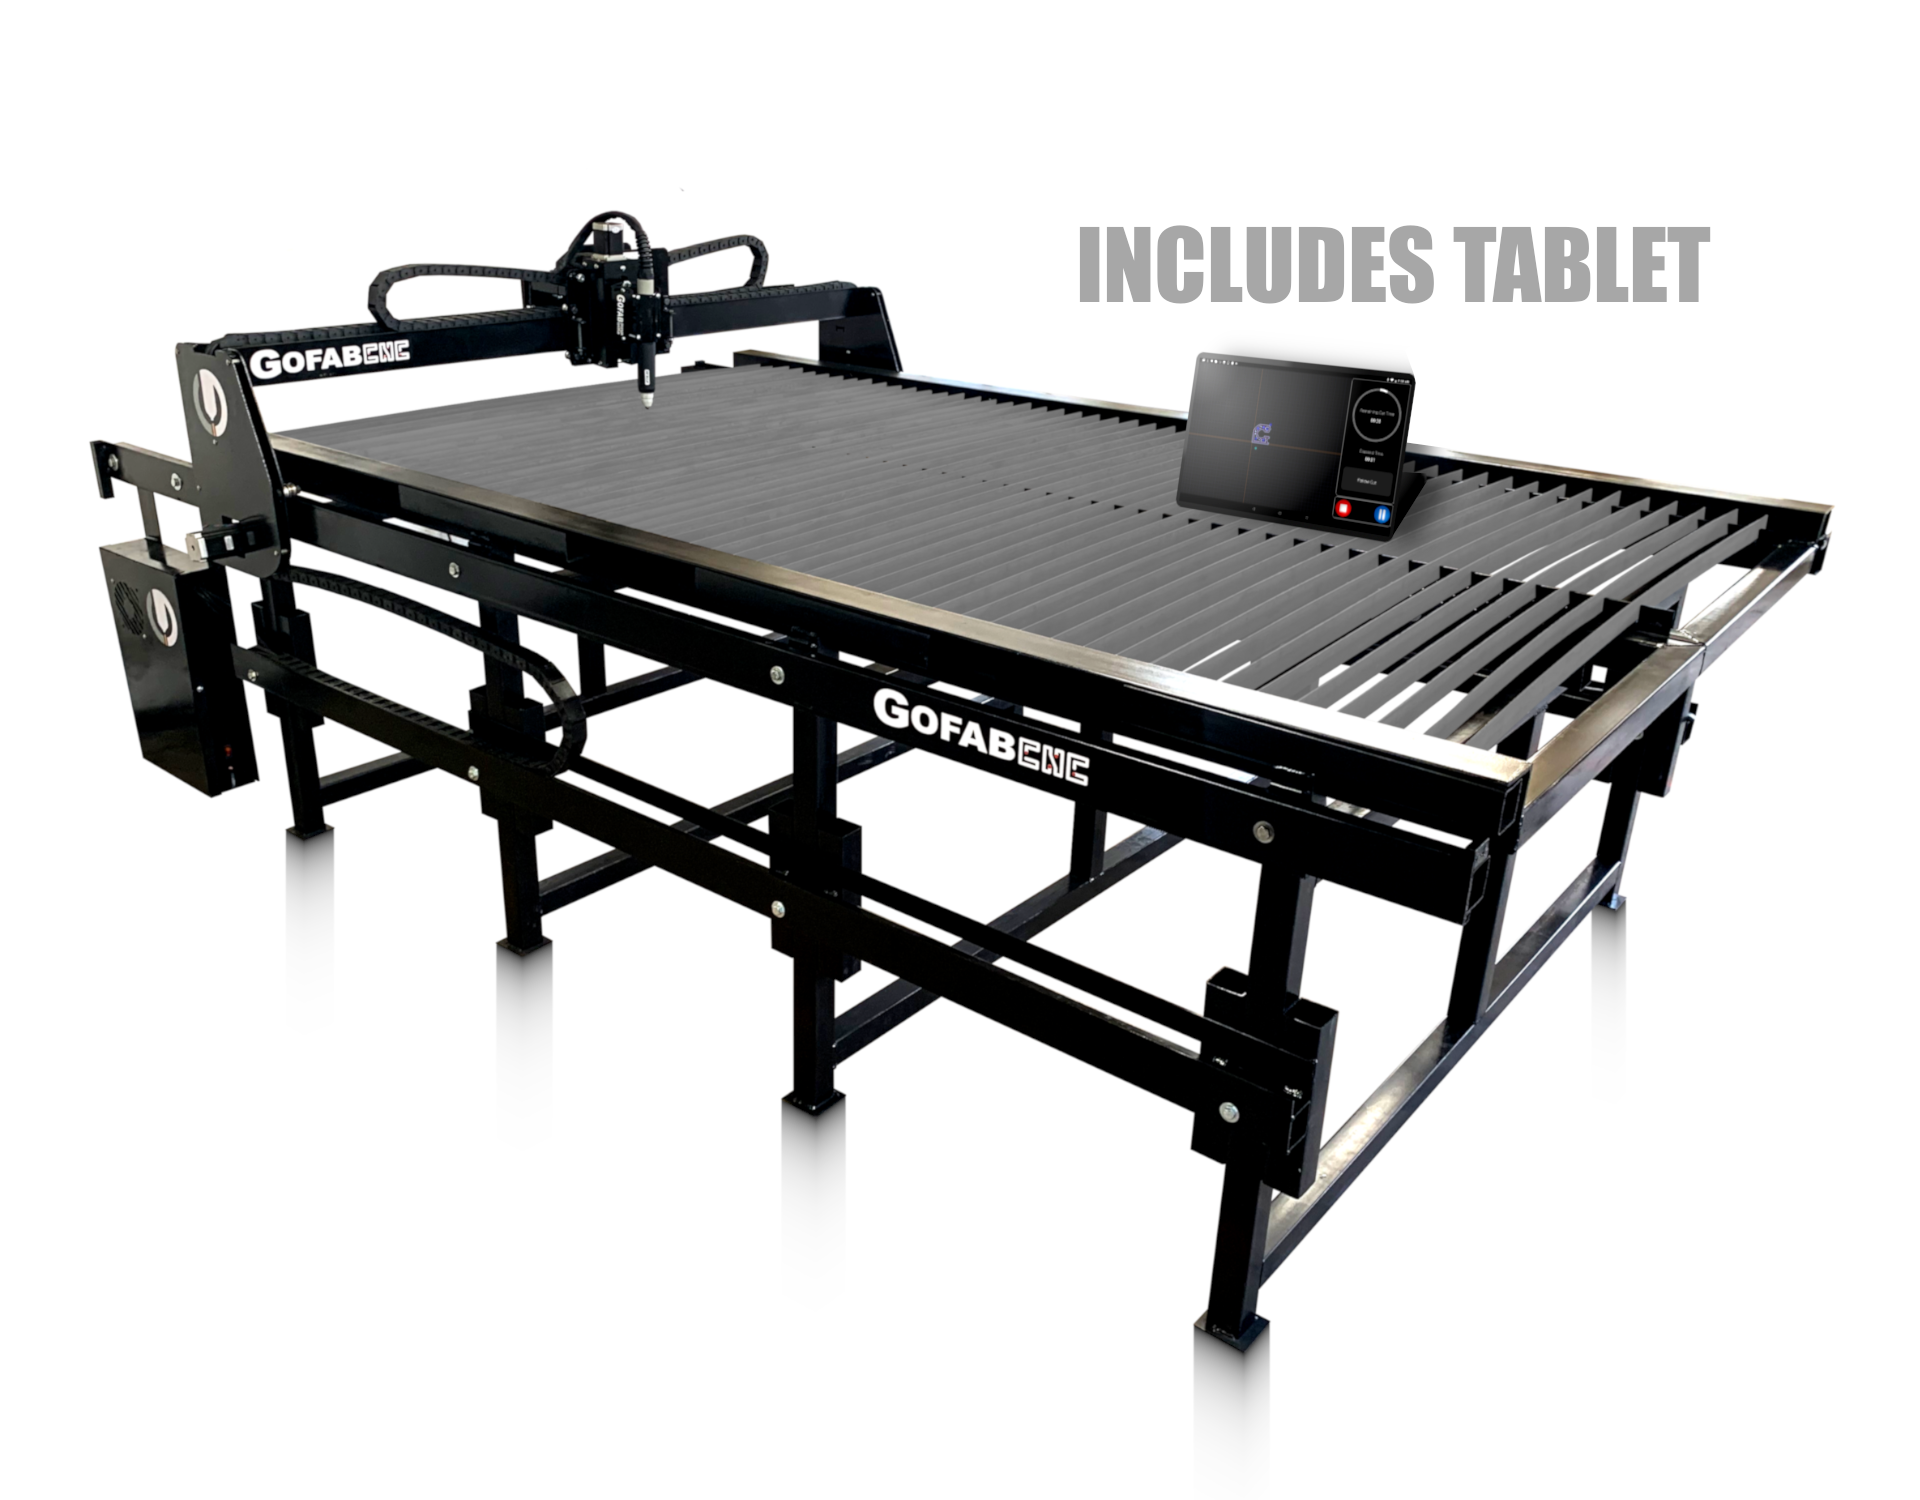 Table_Tablet